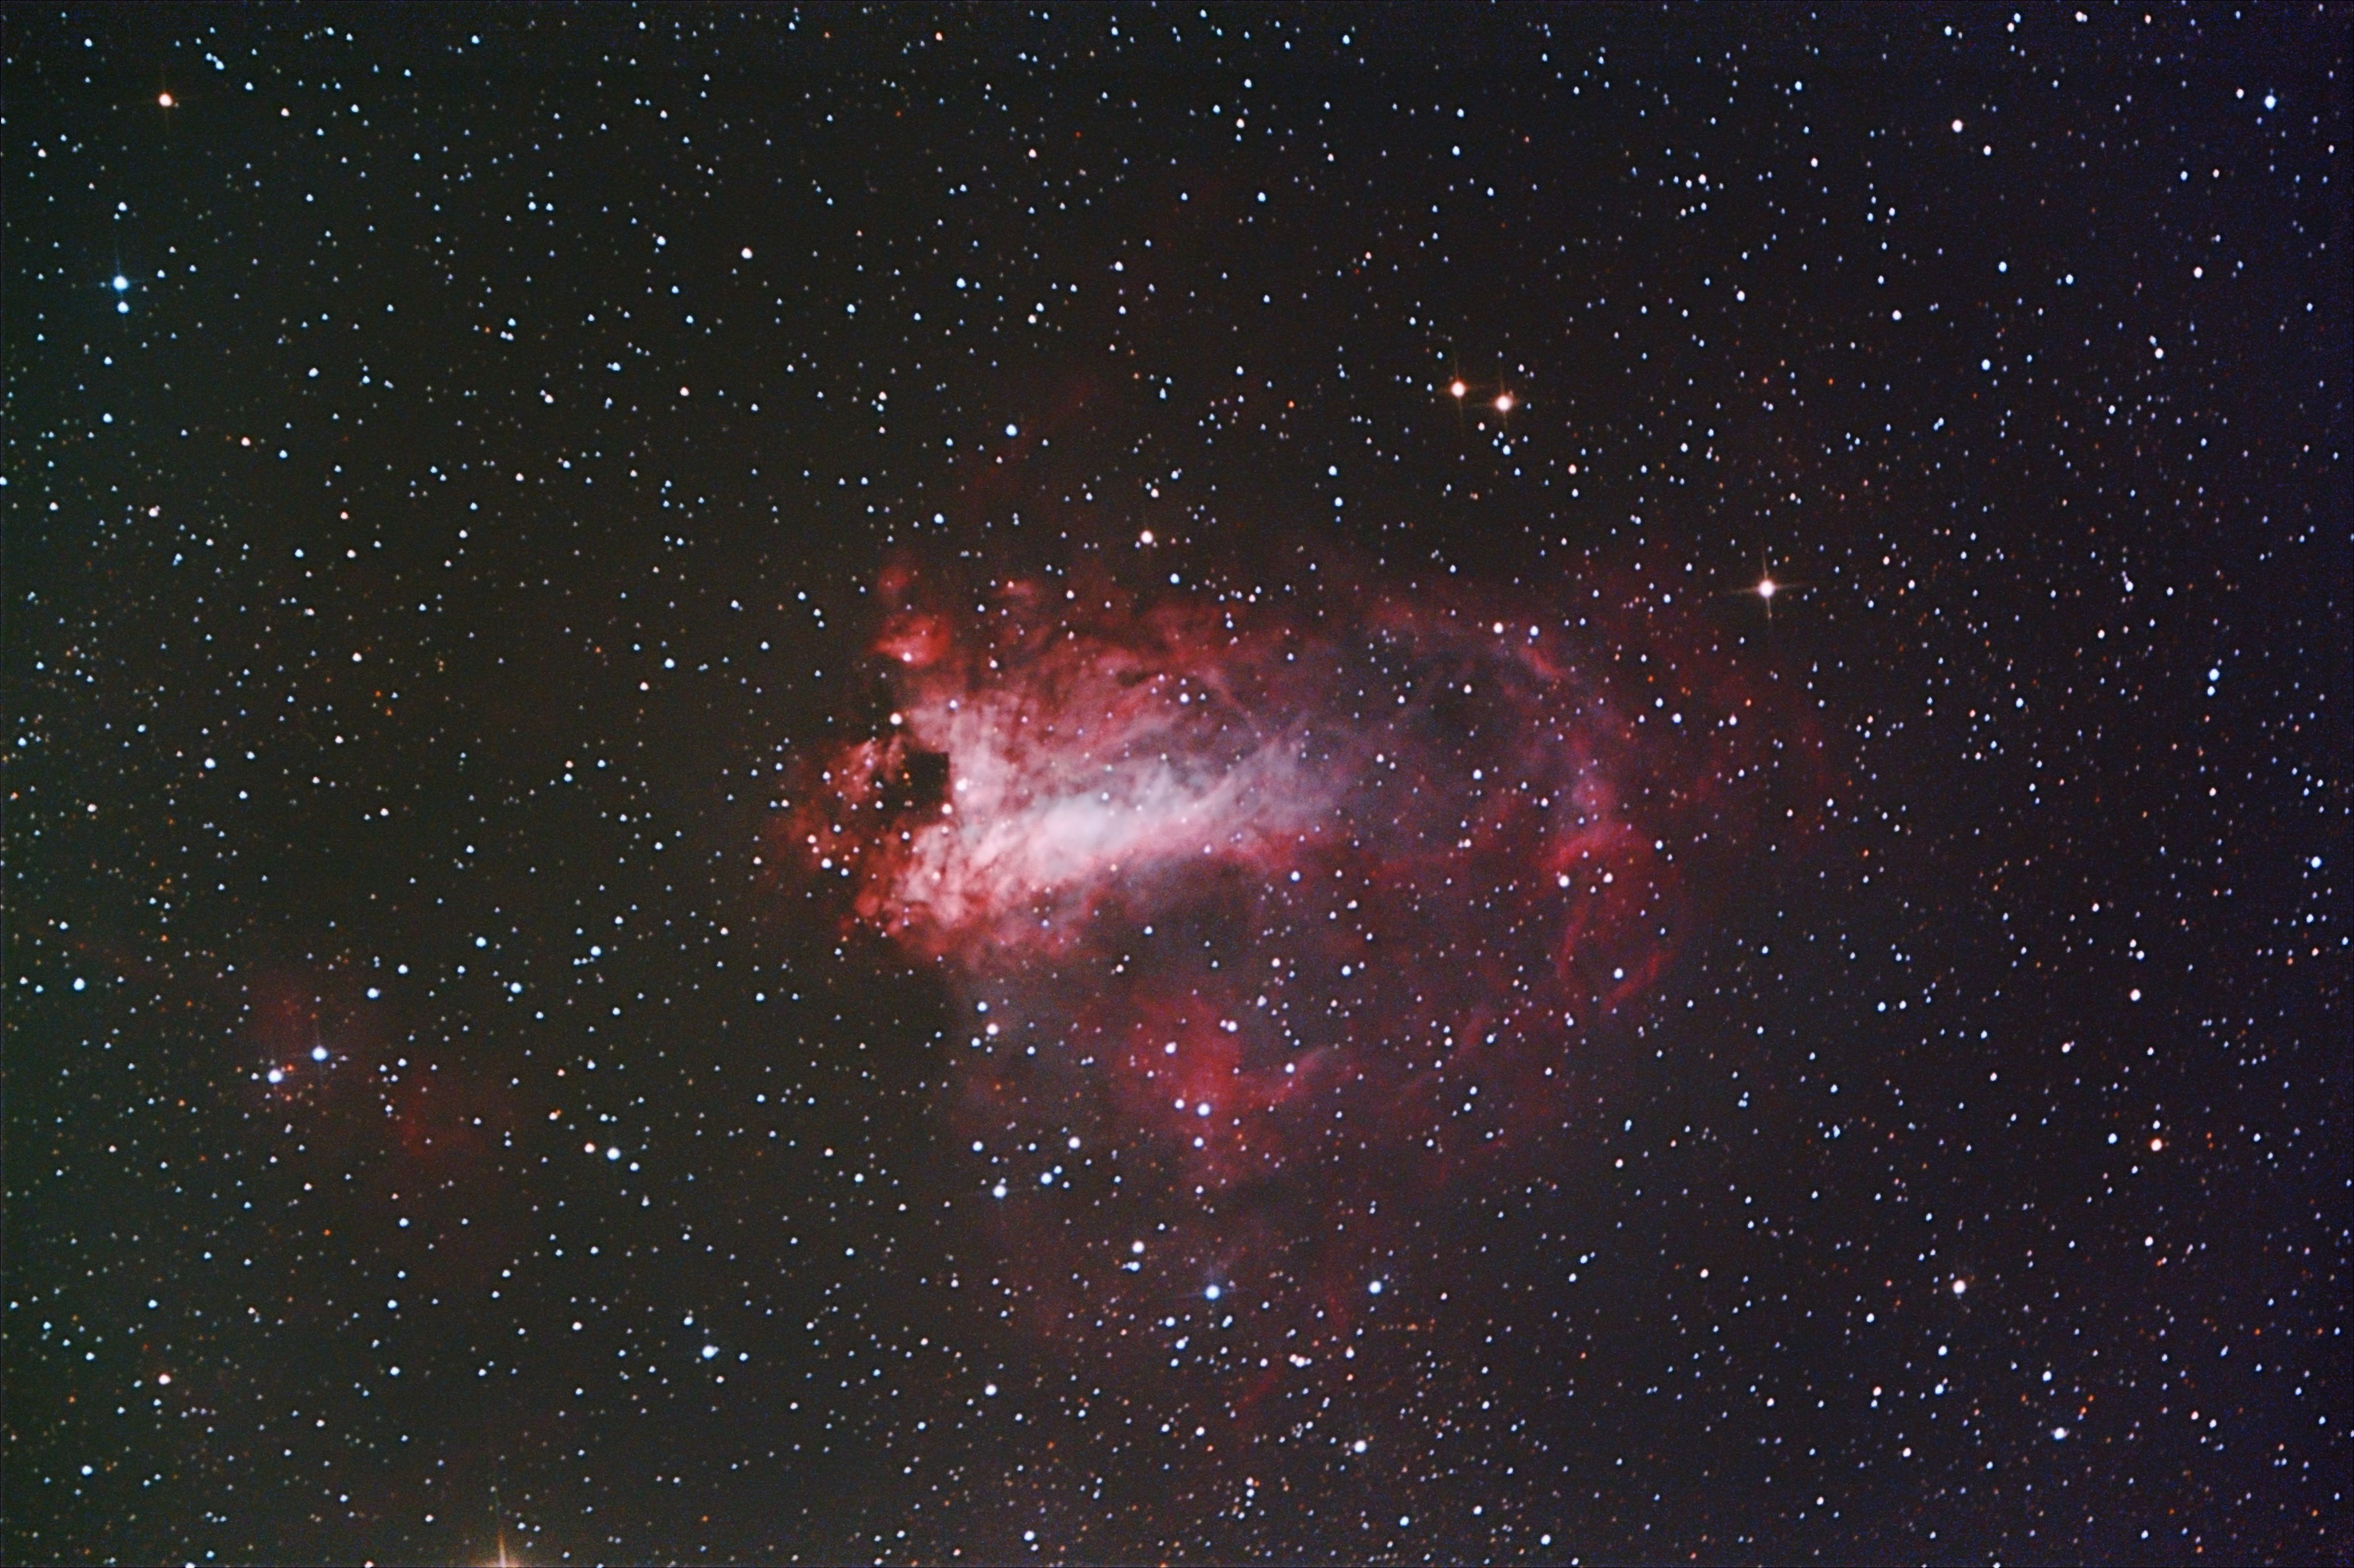 M17 - The Swan Nebula | Astronomy Pictures at Orion Telescopes